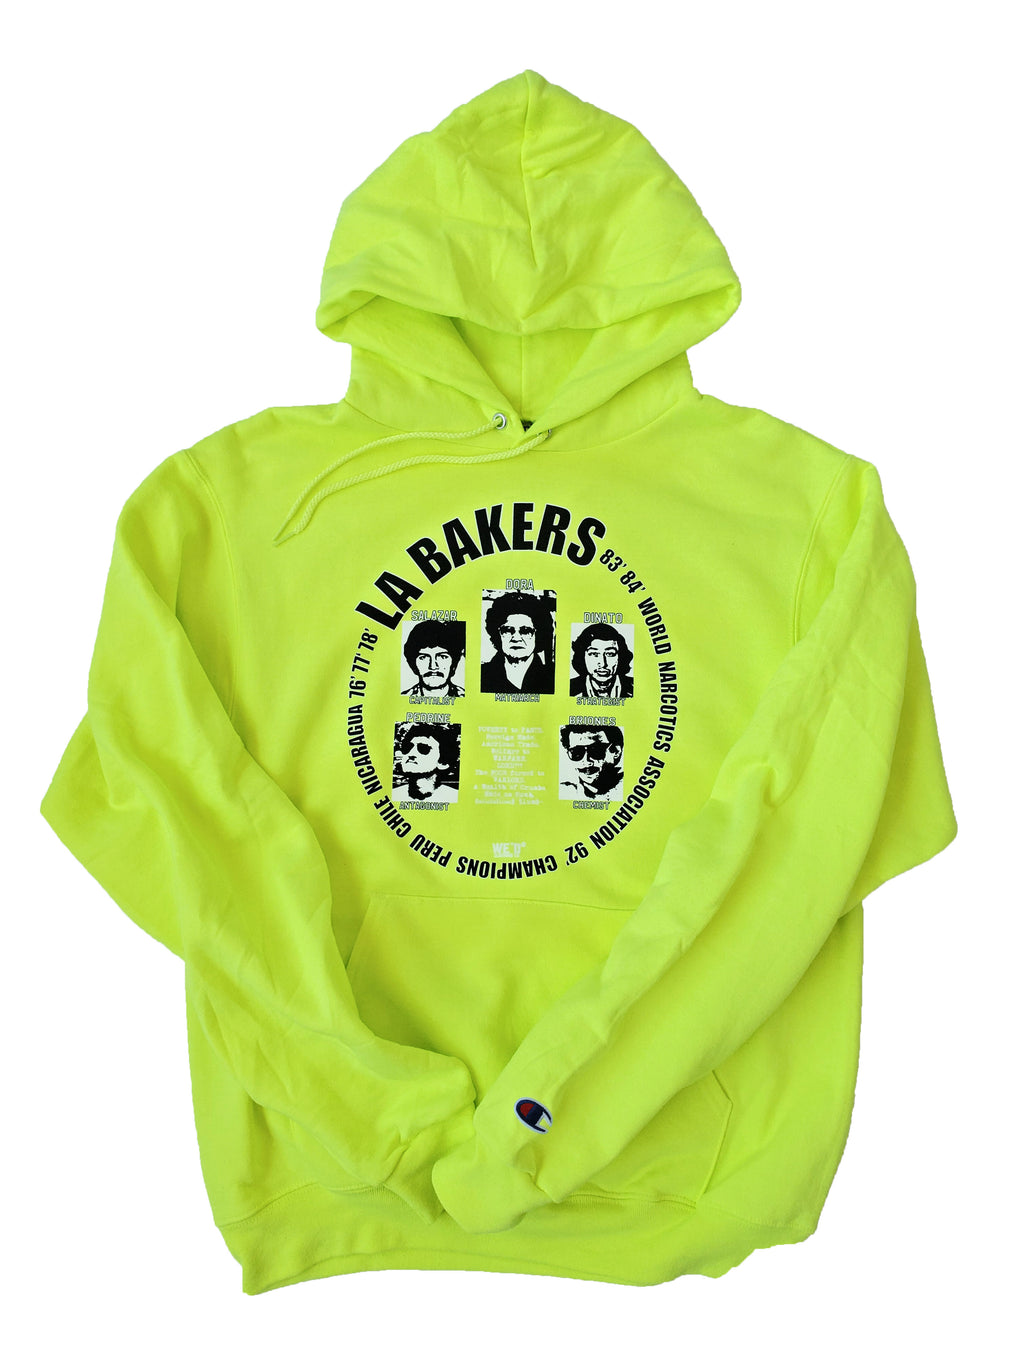 LA BAKERS x CHAMPION - Safety Yellow Hood